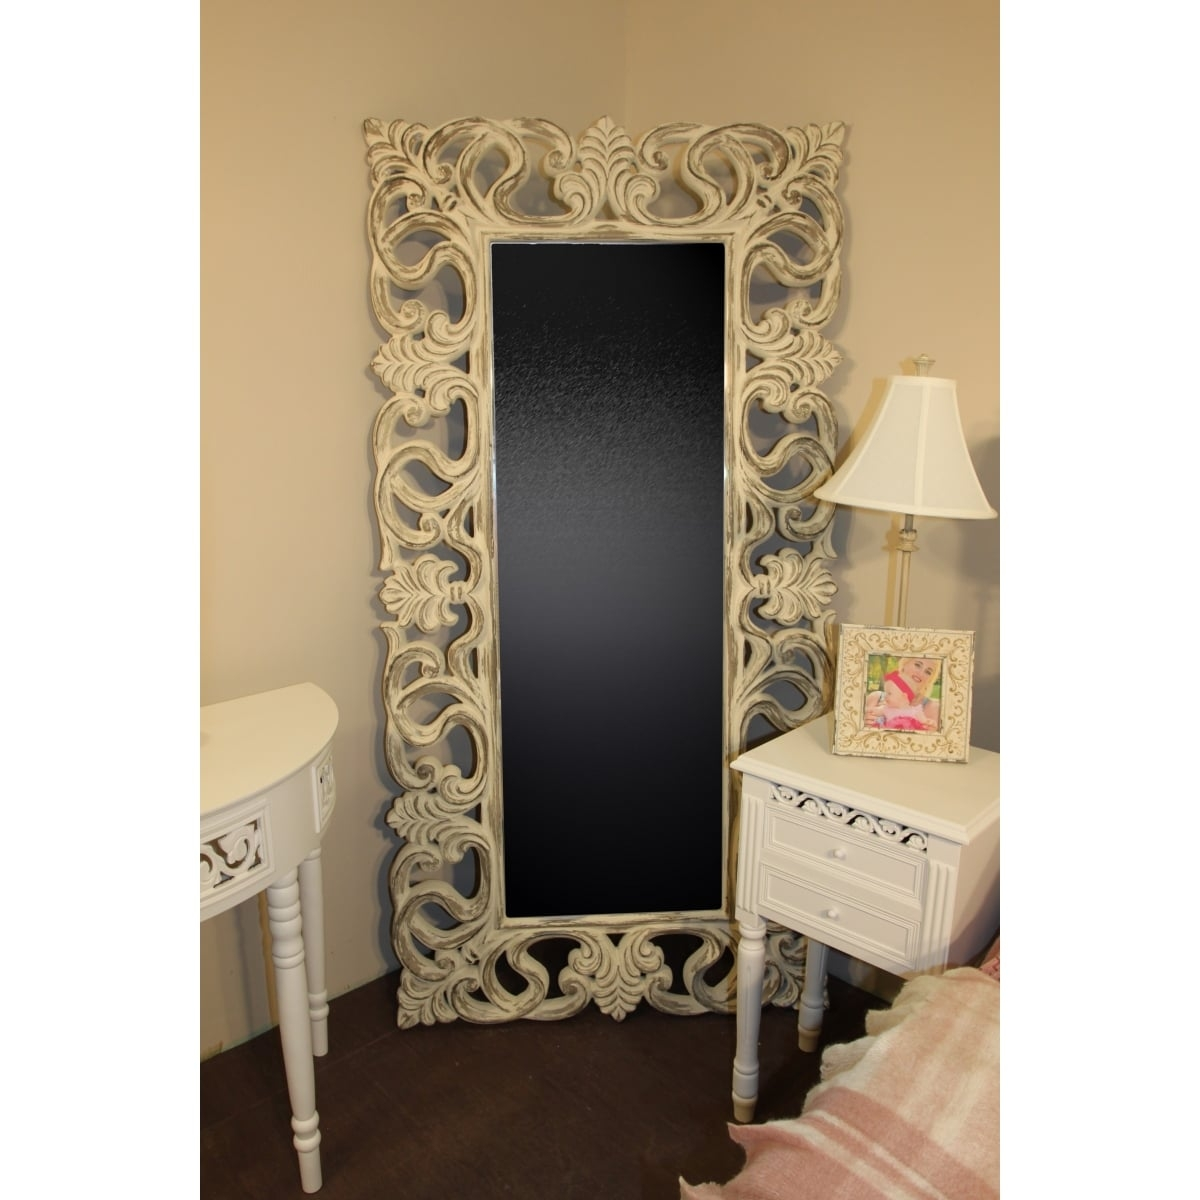 Full Length Mirror Shab Chic Swanky Interiors Throughout Shabby Chic Mirrors Cheap (View 6 of 15)